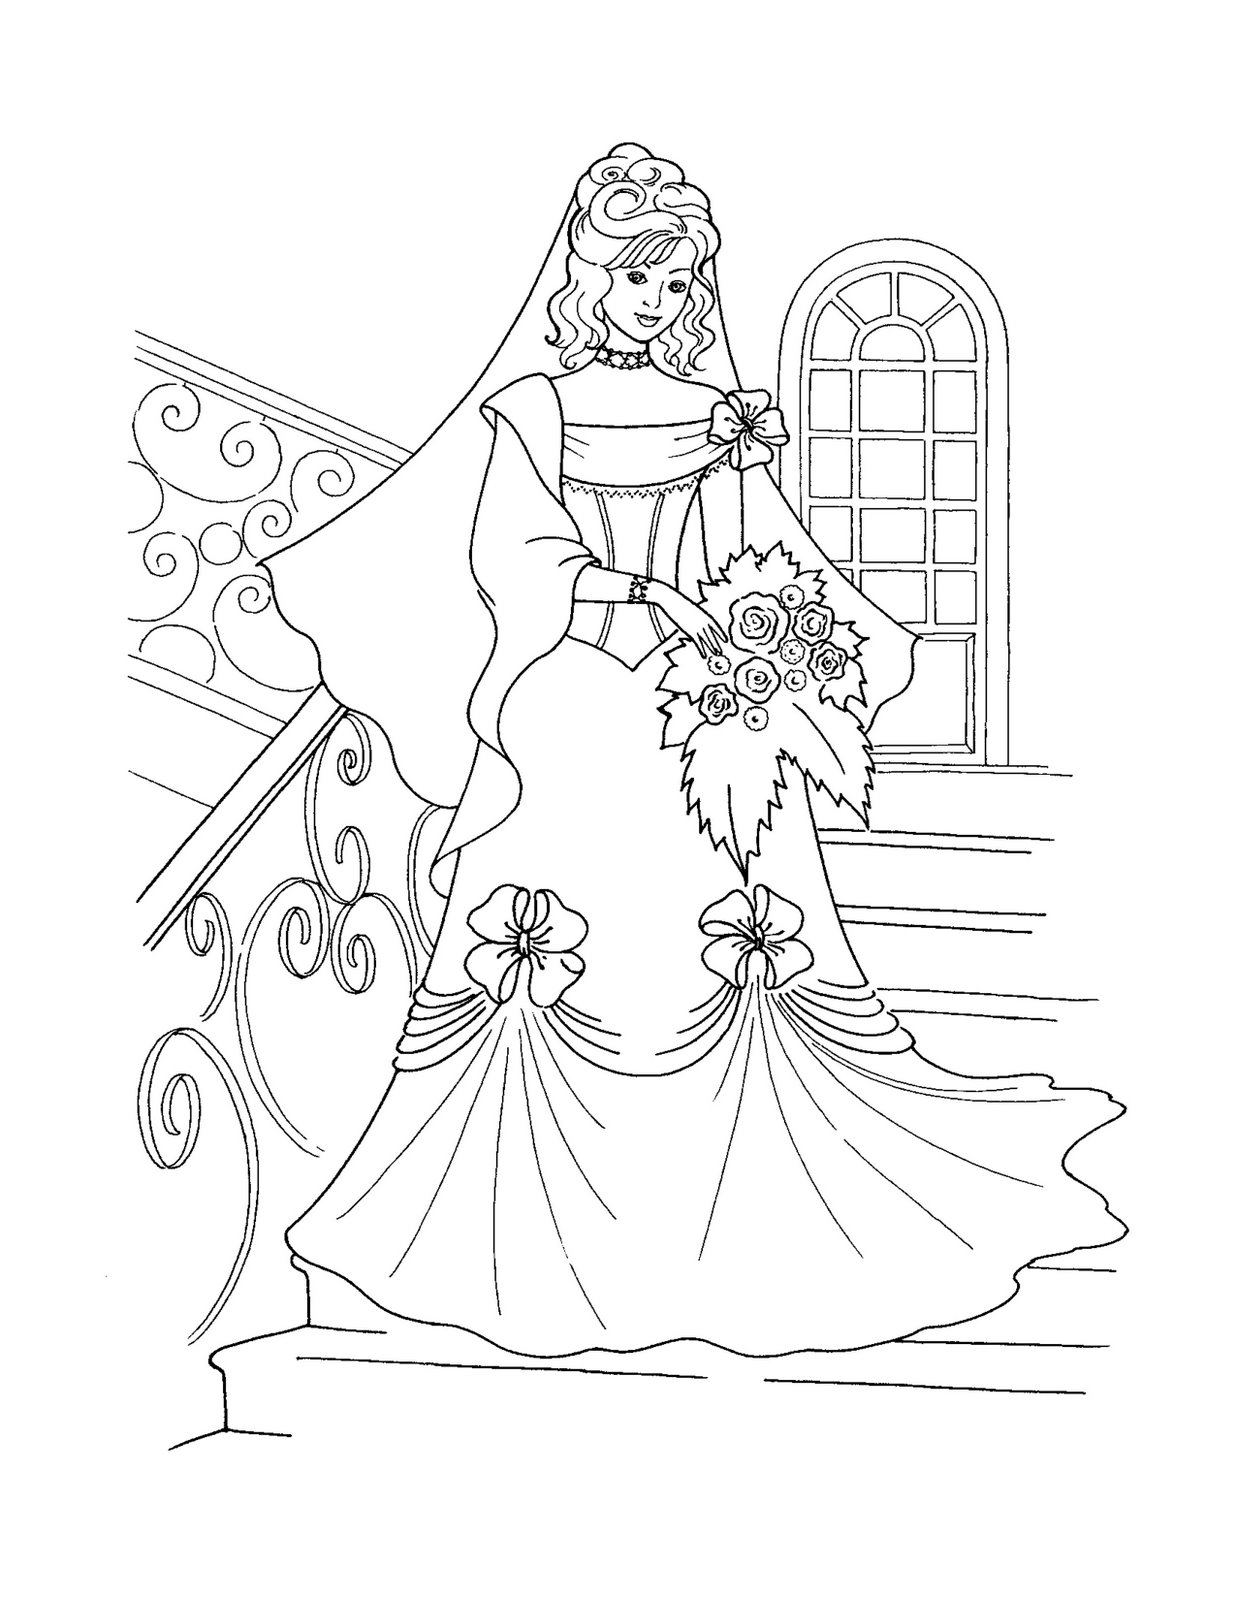 disney princess castle coloring pages - Disney Princess Coloring Pages Free Printable